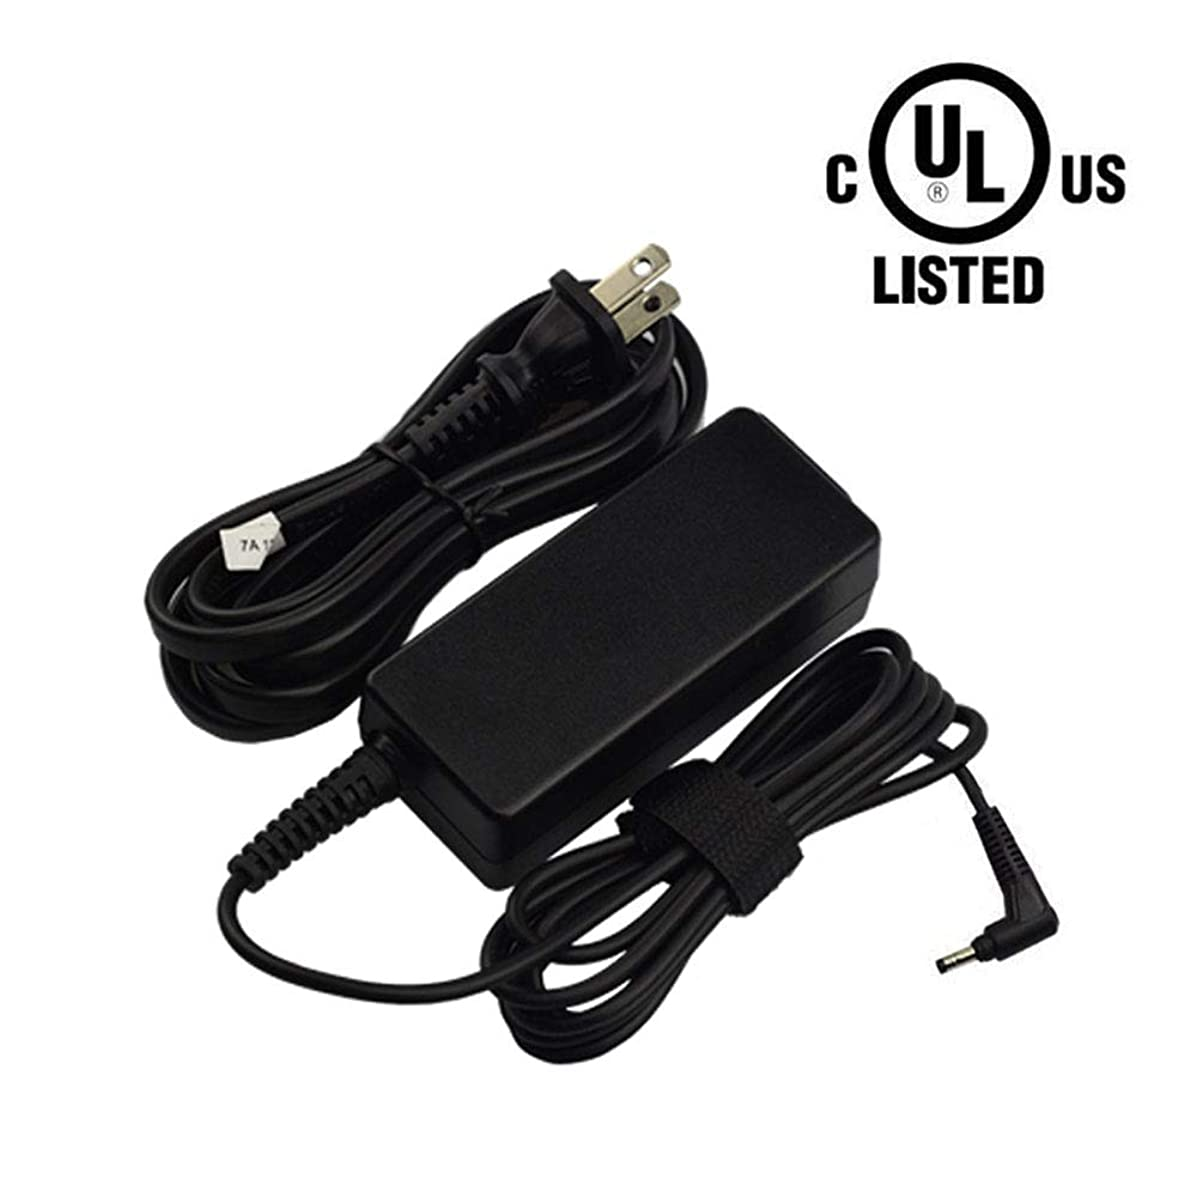 45W AC Charger Fit for Lenovo Chromebook N23 N22 N42 IdeaPad 110 100 120s 130 320 330 330s 510 710s ADL45WCC PA-1450-55LL ADP-45DW B 80S6 80Sf 80XR 80XM 81A4 81CW 81CX Laptop Power Supply Adapter Cord